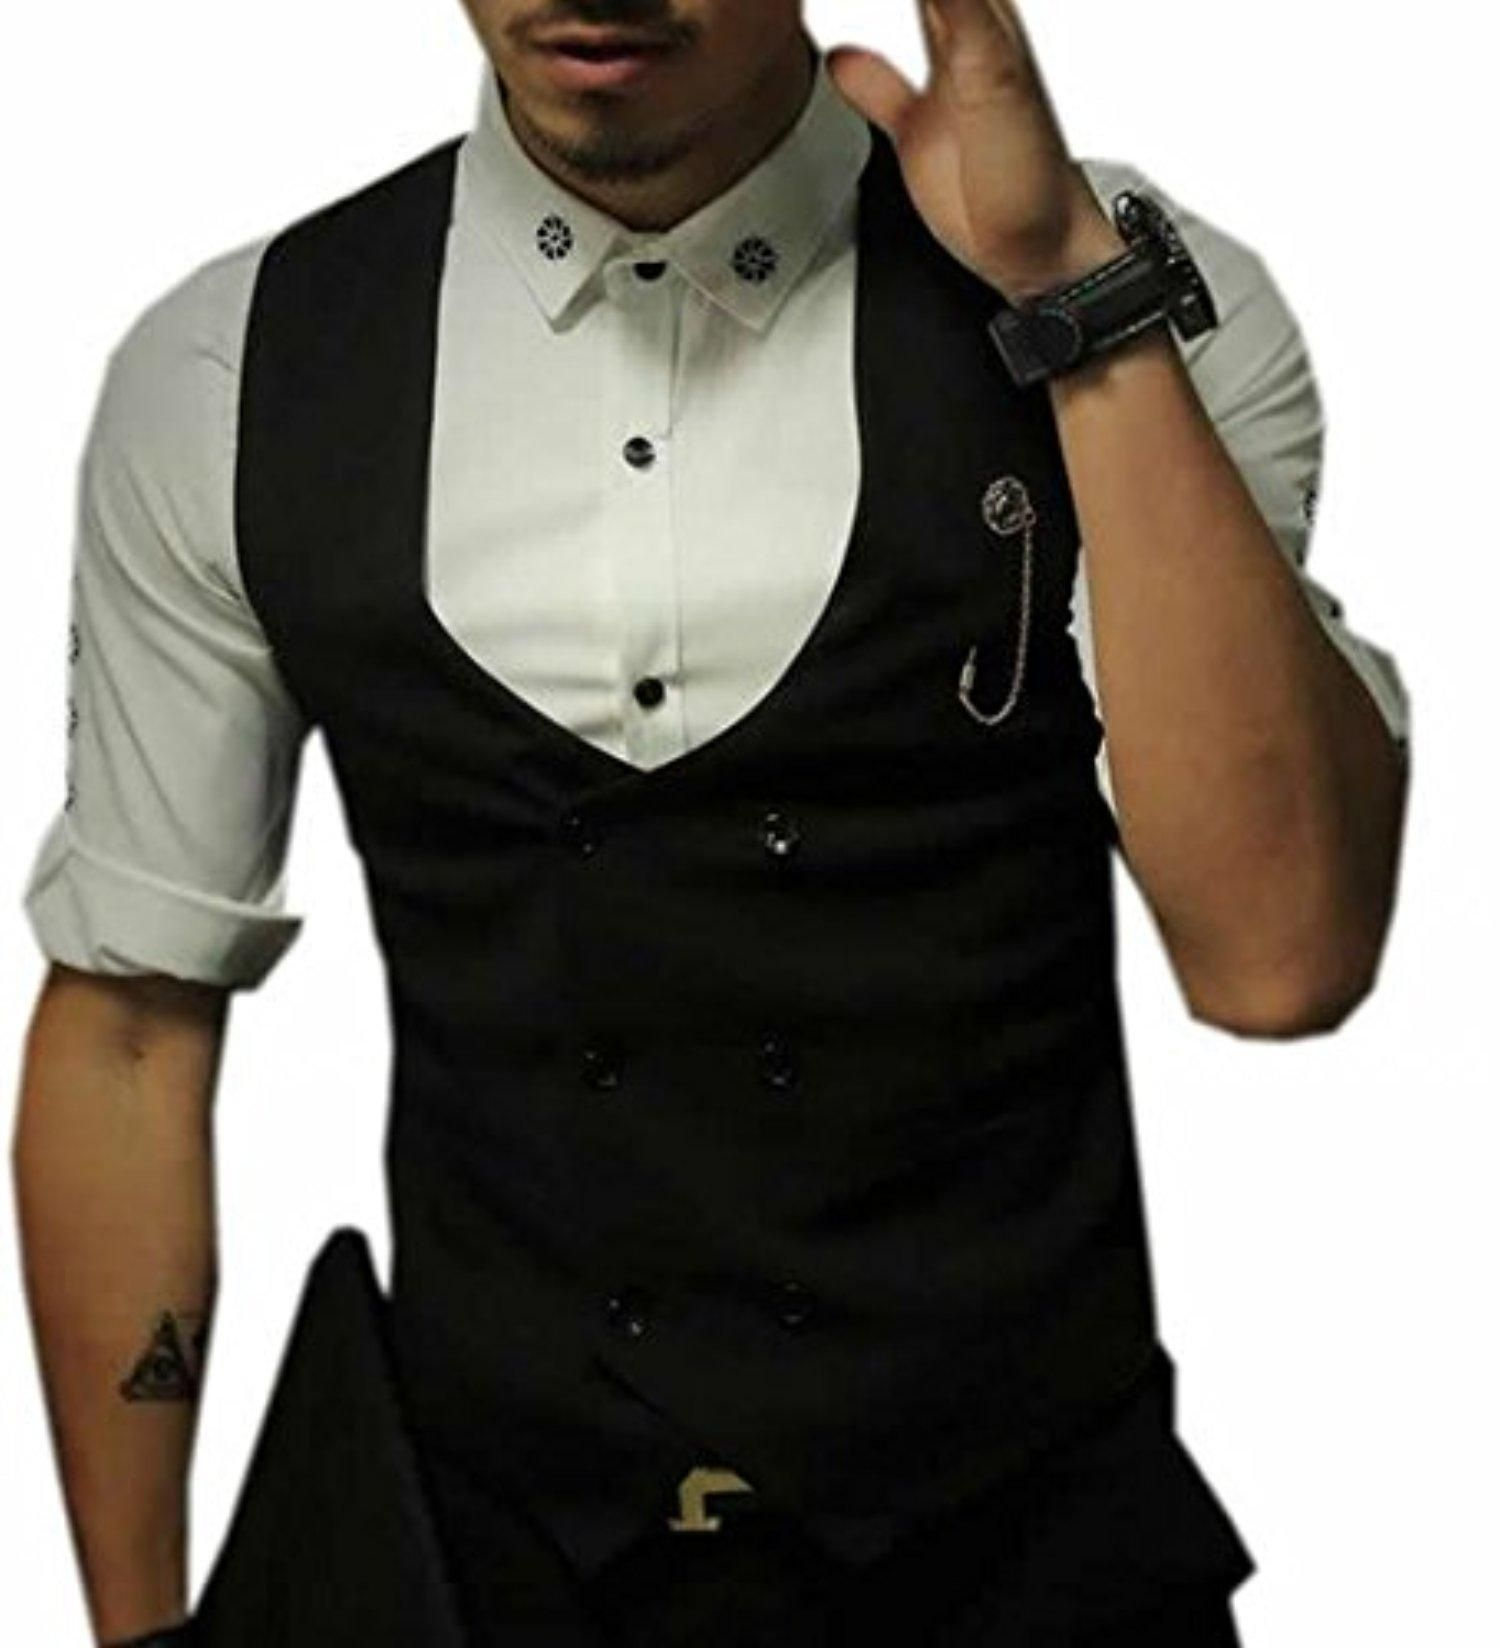 ARRIVE GUIDE Mens Casual Double-Breasted Waistcoat Vest black S - Brought to you by Avarsha.com